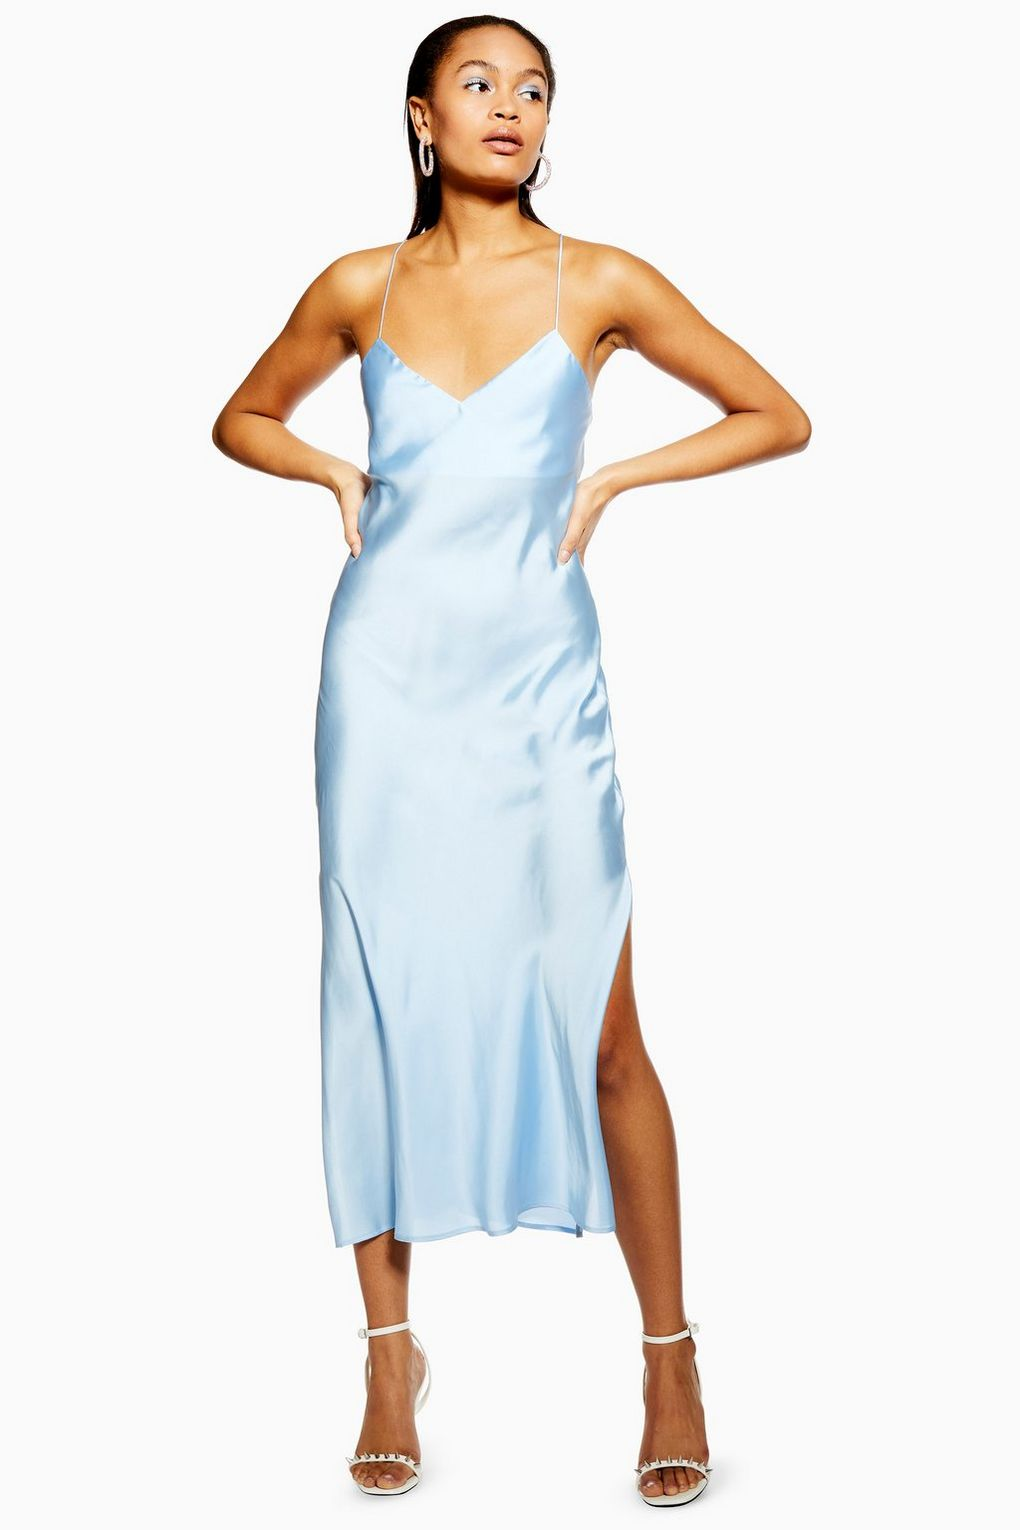 Top Shop Satin Dress.jpg